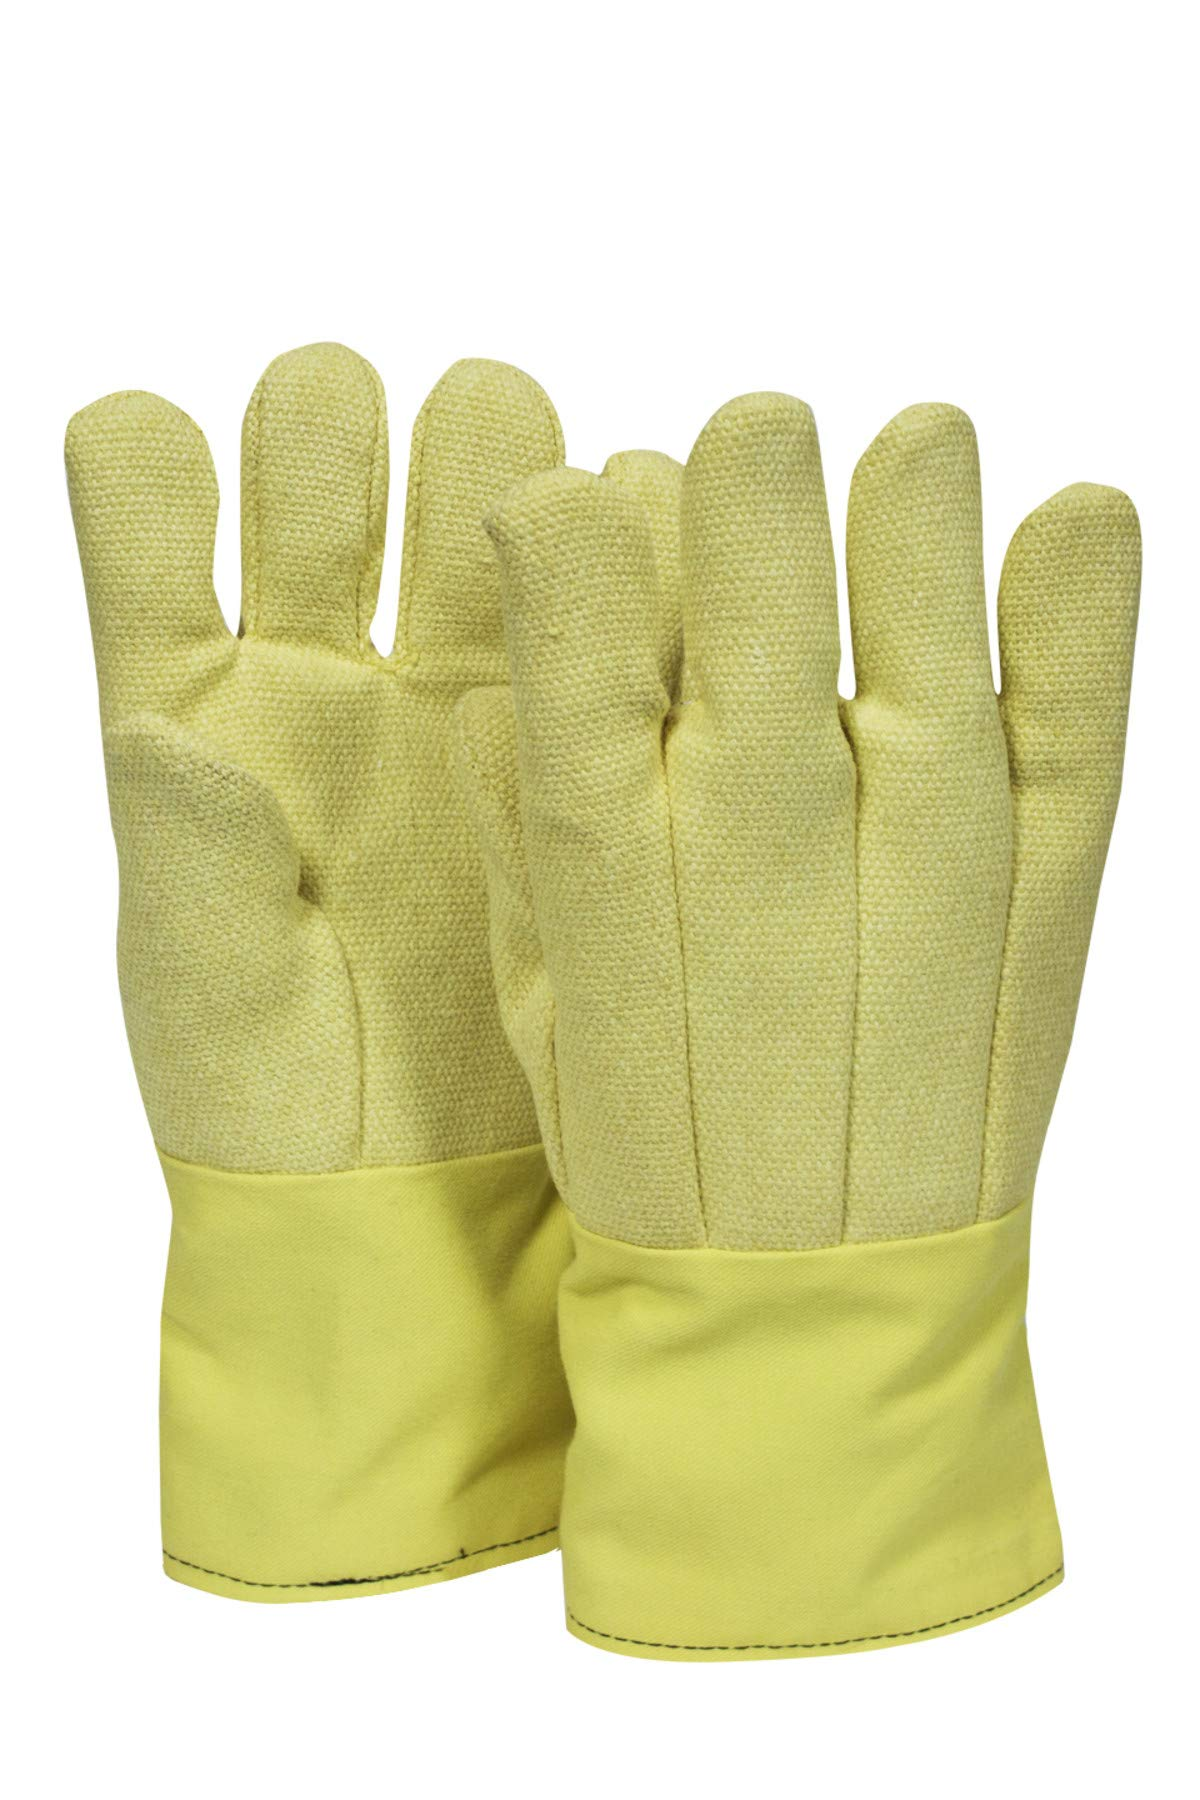 National Safety Apparel G51TCVB11514 Thermobest Glove with Extra Nomex Palm Patch, Large, Yellow by National Safety Apparel Inc (Image #1)